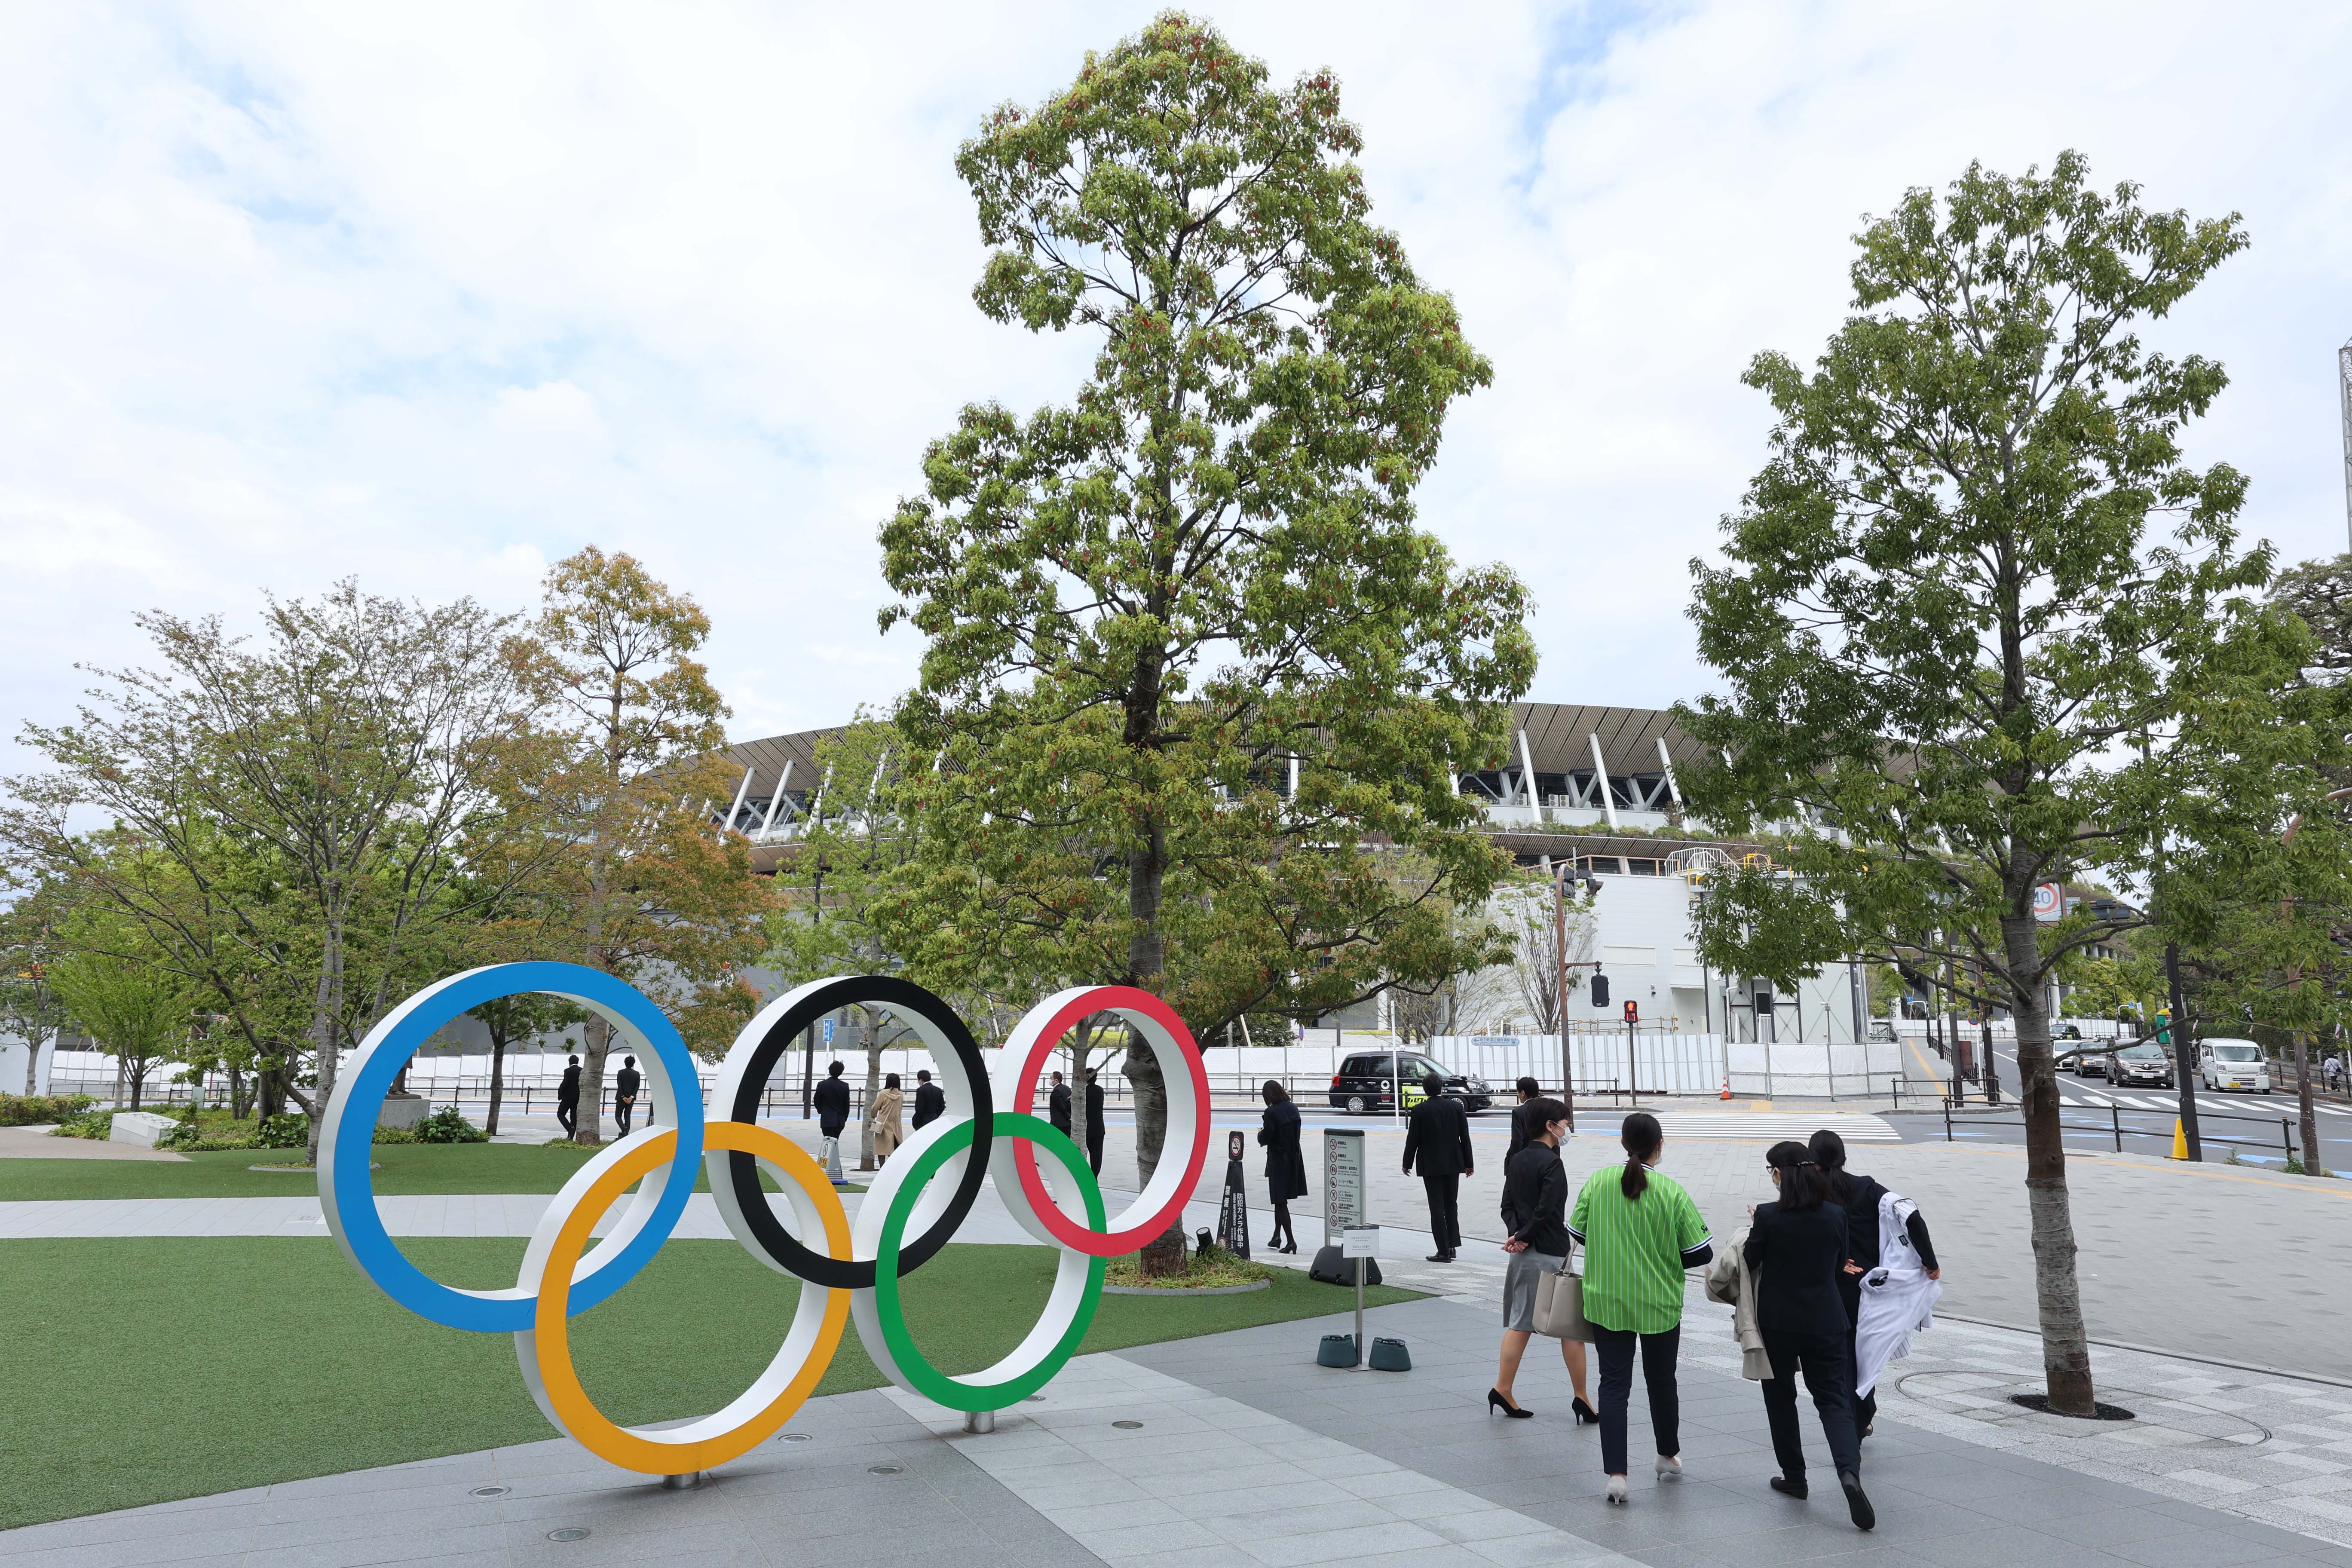 Apr 6, 2021; Tokyo, JAPAN; People walk past the Olympic rings sculpture near the Japan National Stadium in preparation for the Tokyo 2020 Olympic Summer Games set to begin in July 2021. Mandatory Credit: Yukihito Taguchi-USA TODAY Sports